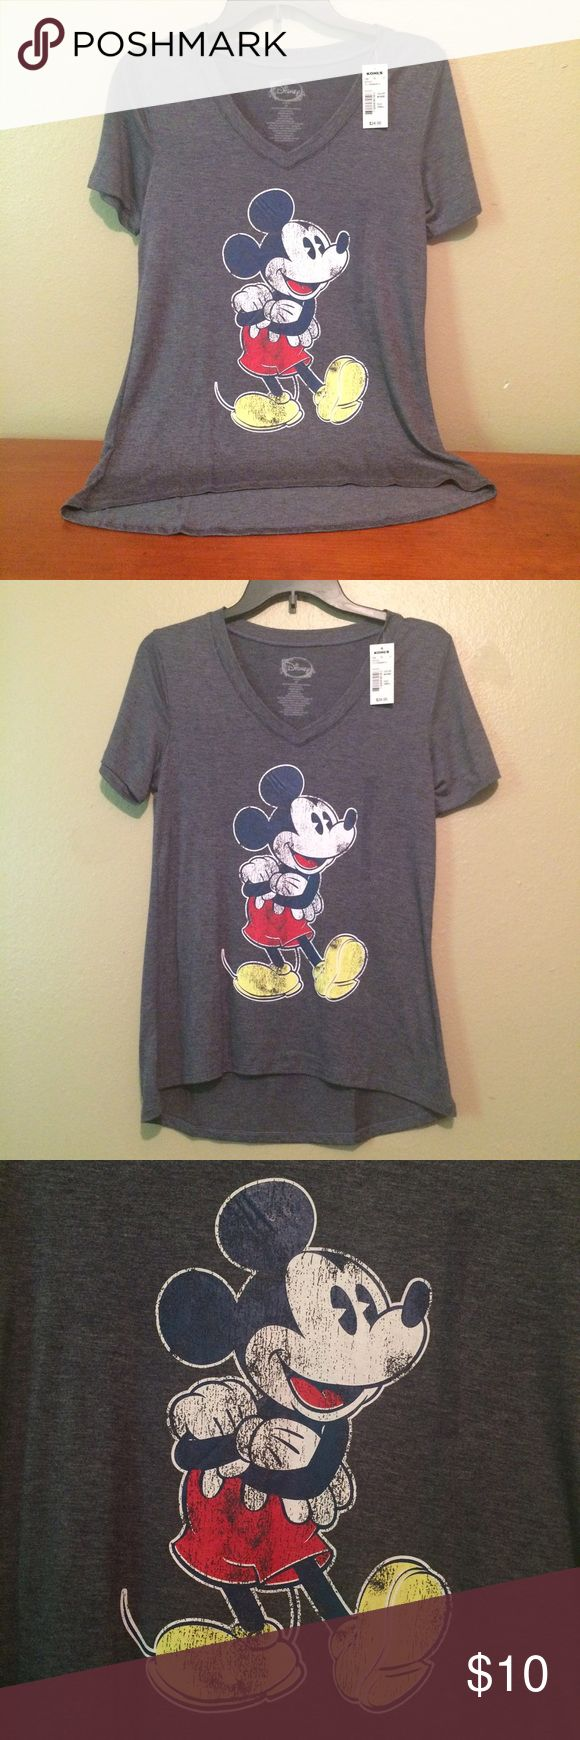 Mickey Mouse Distressed Vintage look Tshirt This super cute gray Mickey Mouse shirt has a distressed vintage look but is NWT. It is incredibly soft!! Size: XS Material: 62 % cotton 35% rayon 3% spandex. Length: 24 inches Bust.: 28 inches. Him: 36 inches. NWT Retail: $24 Tags: Mickey Mouse shirt. Mickey Mouse T-shirt. Disney sure. Vintage Mickey Mouse shirt. Distressed Mickey Mouse shirt. extra small Mickey Mouse shirt. Disney Tops Tees - Short Sleeve